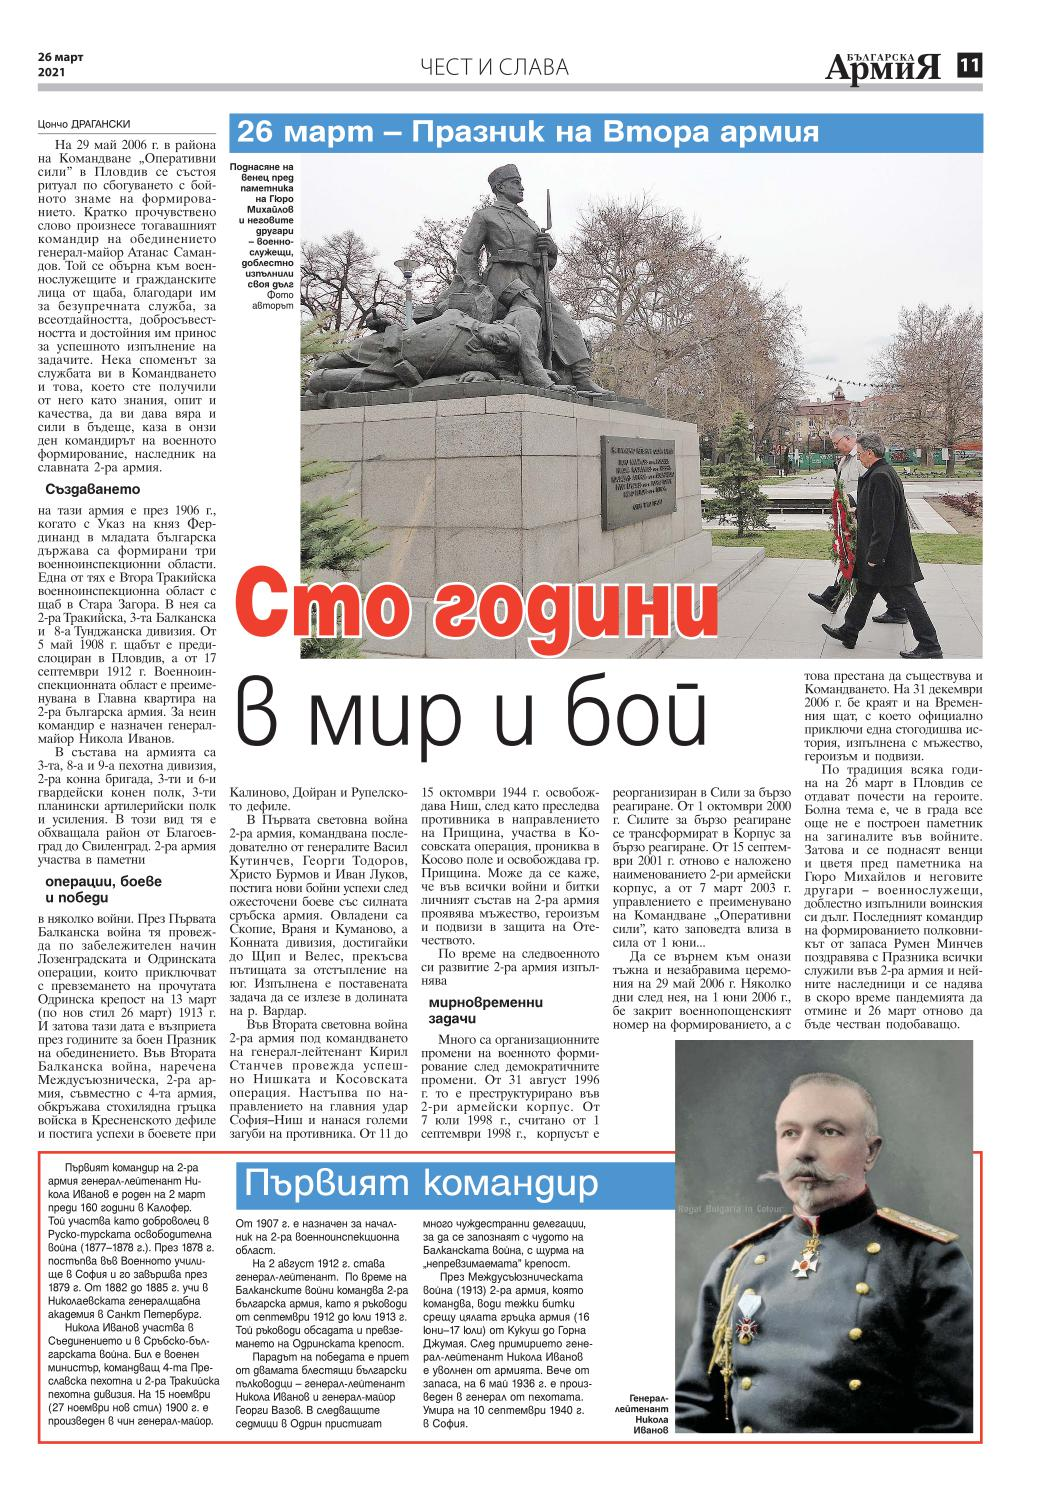 https://armymedia.bg/wp-content/uploads/2021/03/11.page1_-155.jpg